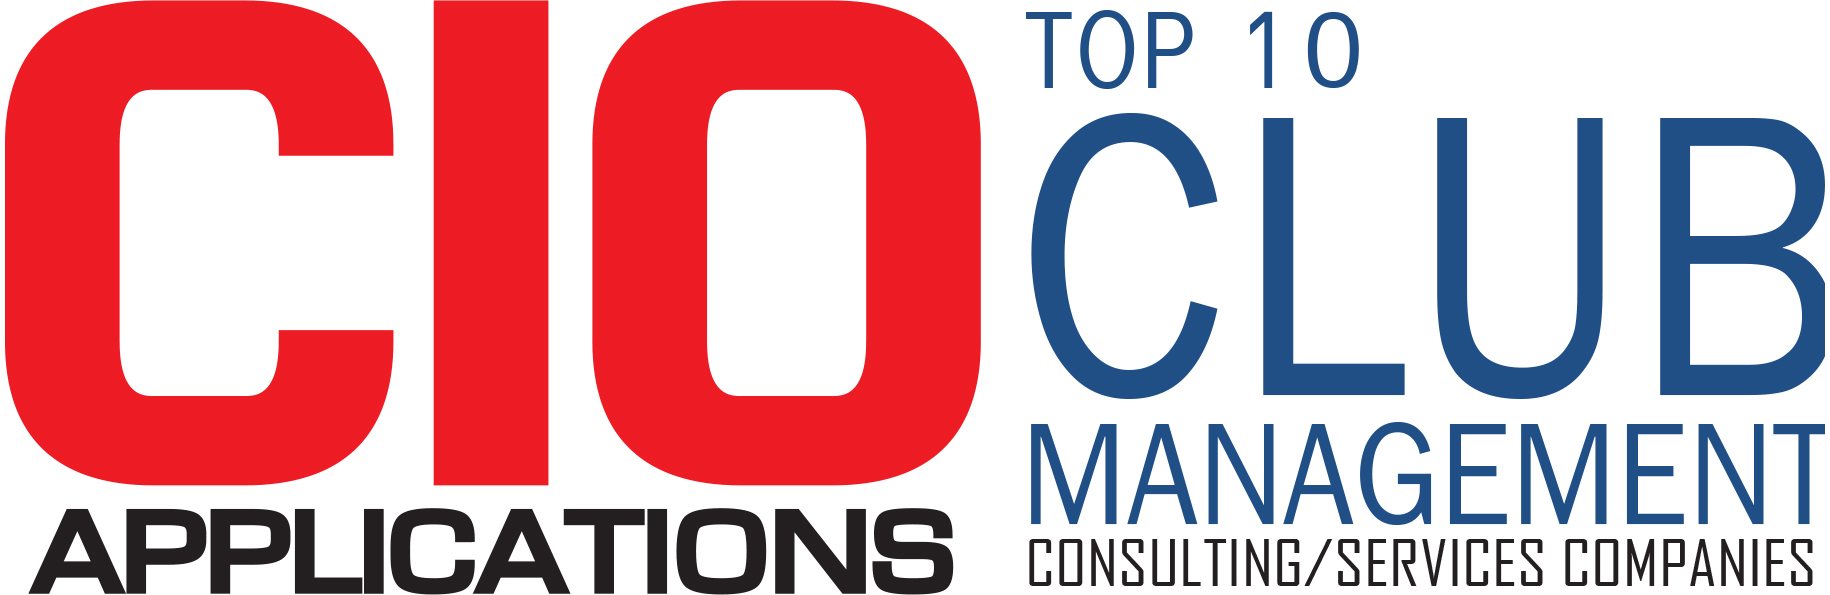 Top Club Management Consulting/Service Companies